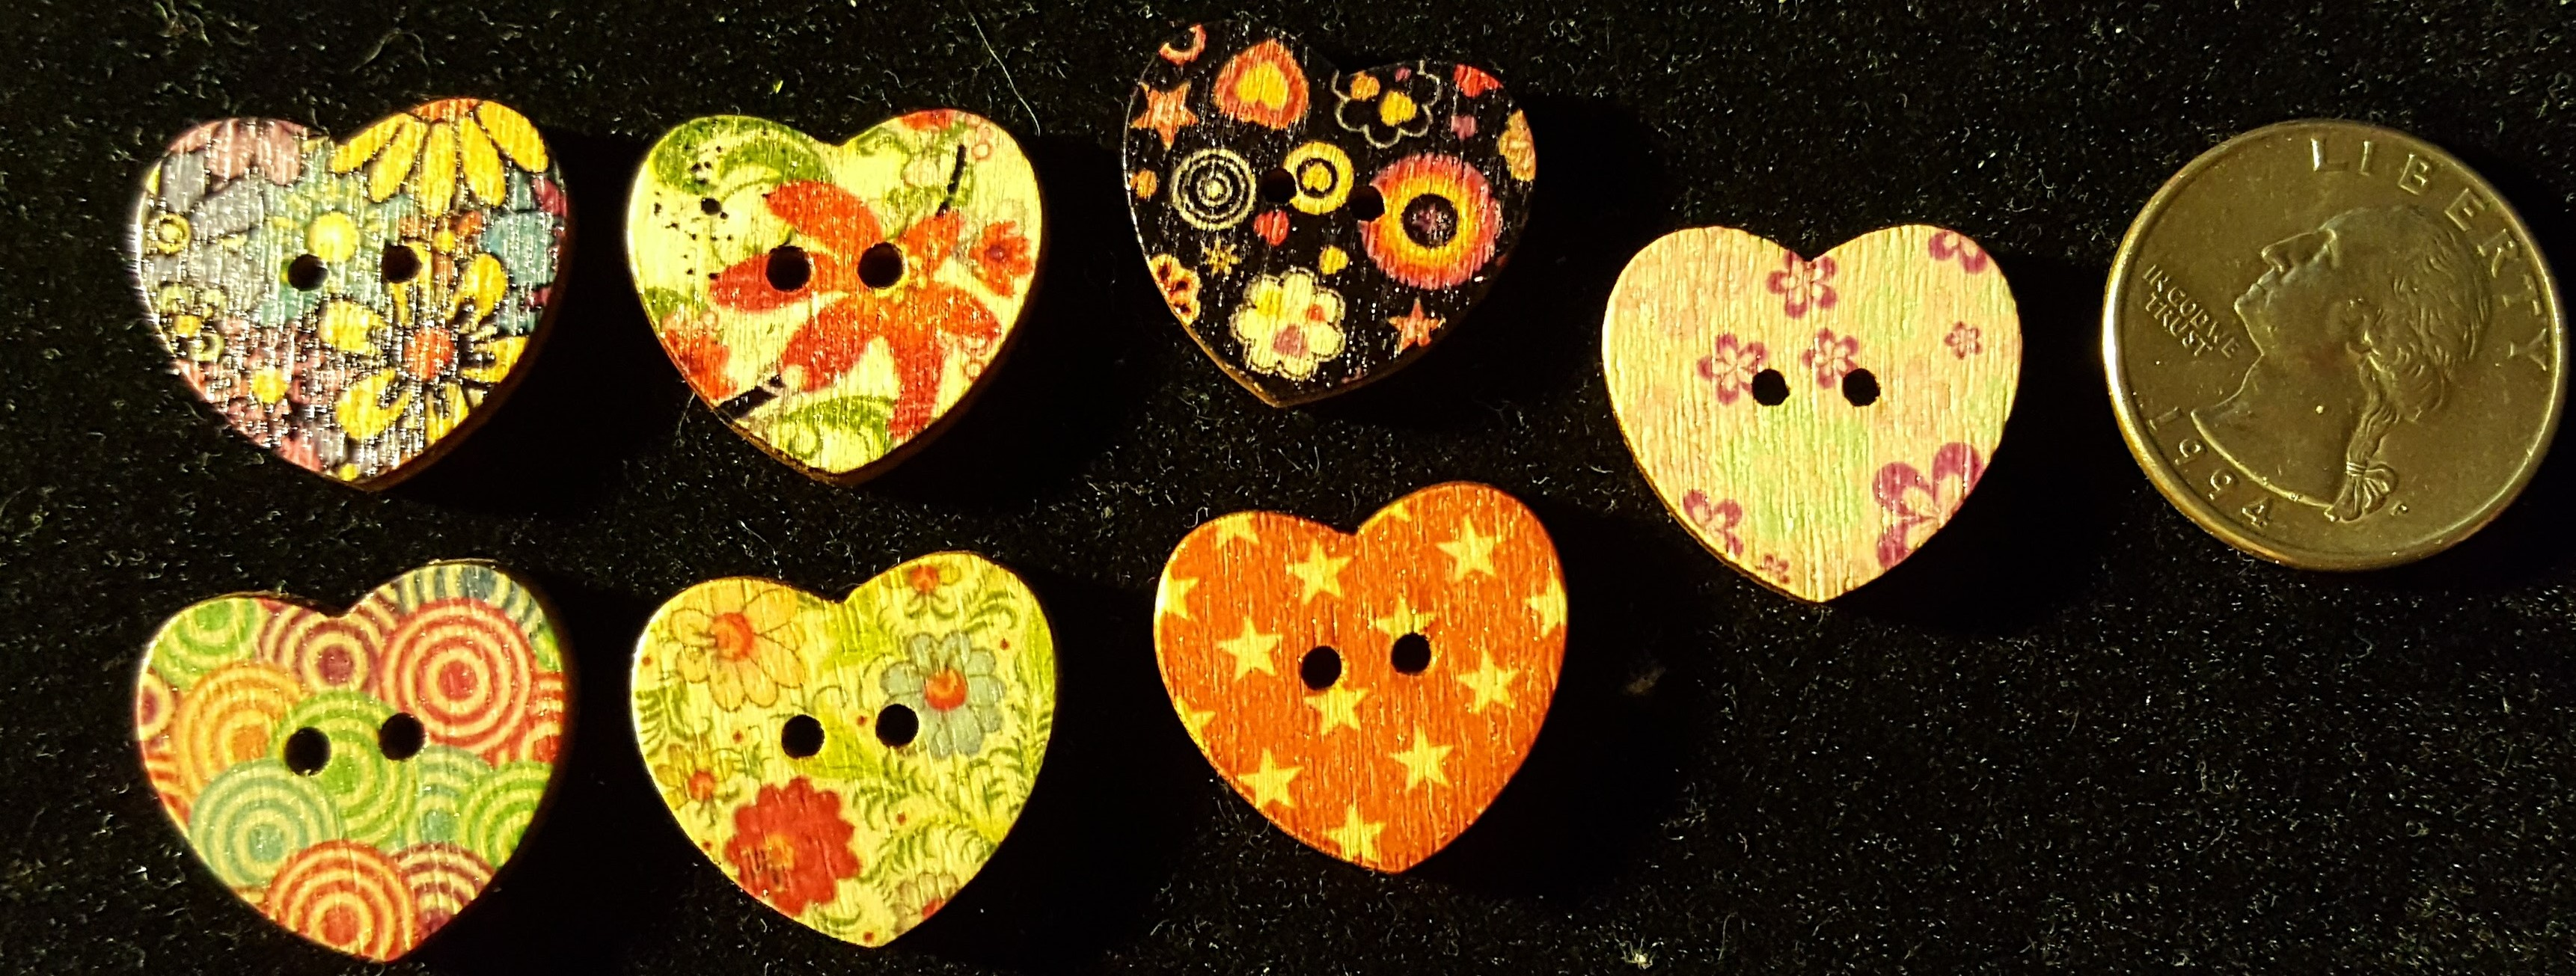 Heart Shaped Buttons #189 sold by Sin City Angels Consignment